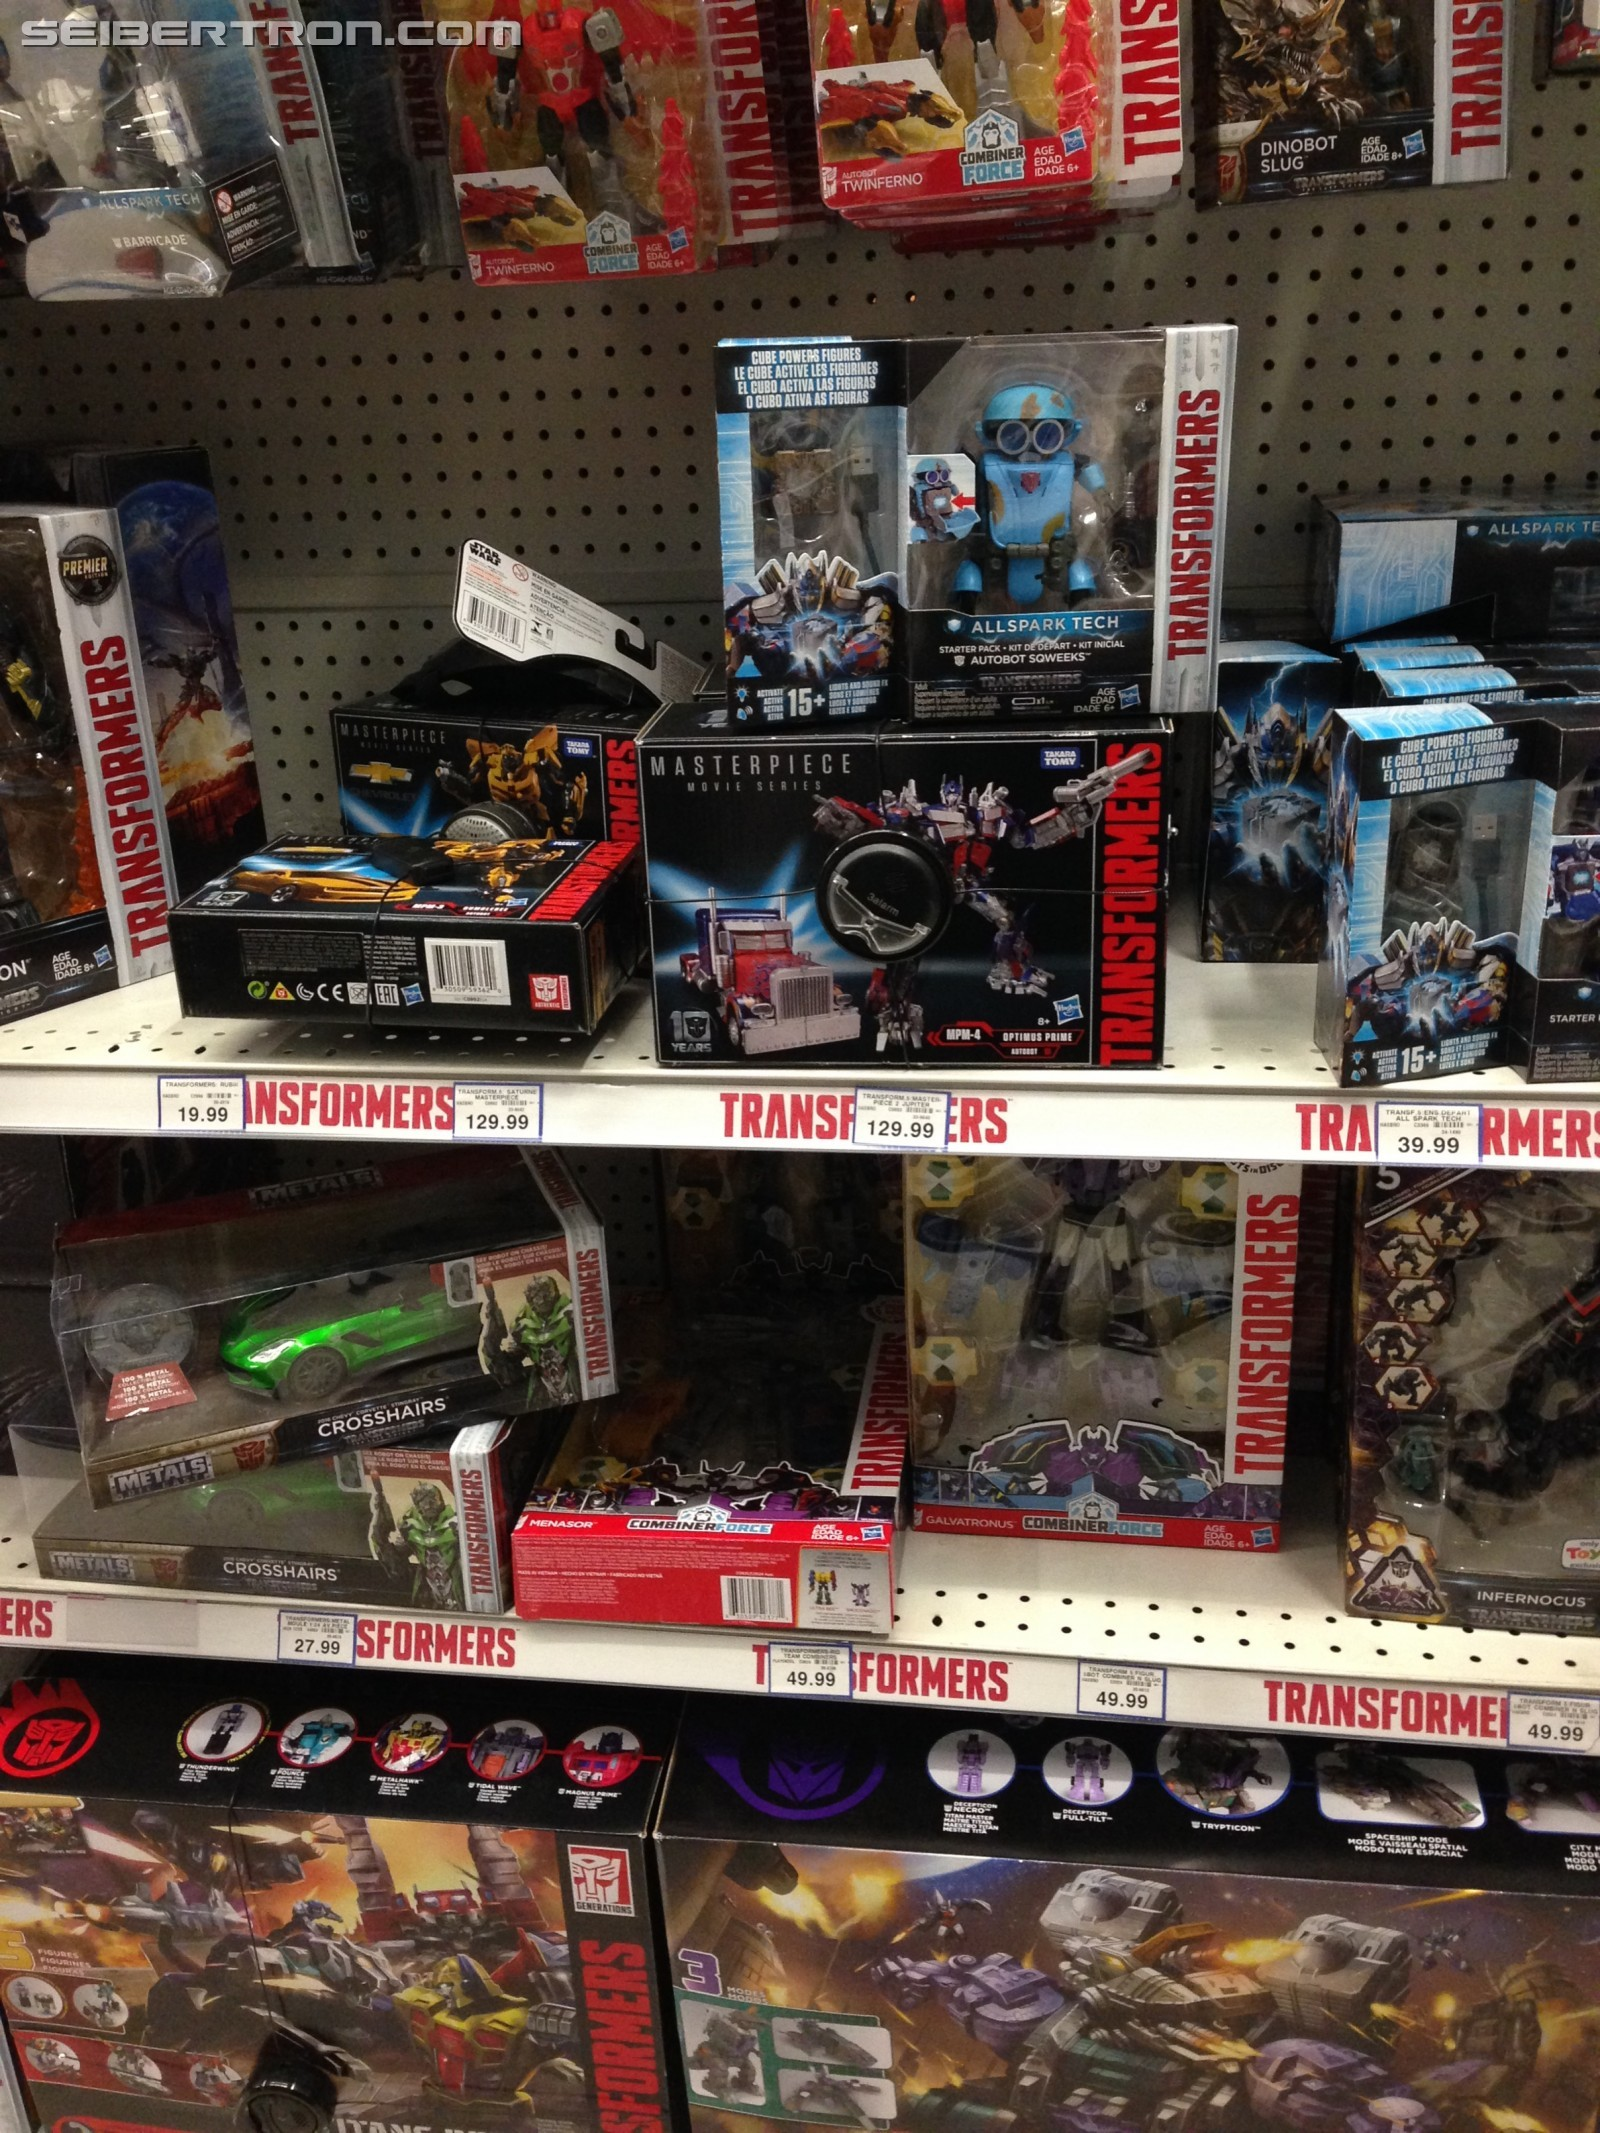 Transformers News: Transformers: The Last Knight Adventure Kit and Allspark Tech Sqweeks Found in Canada